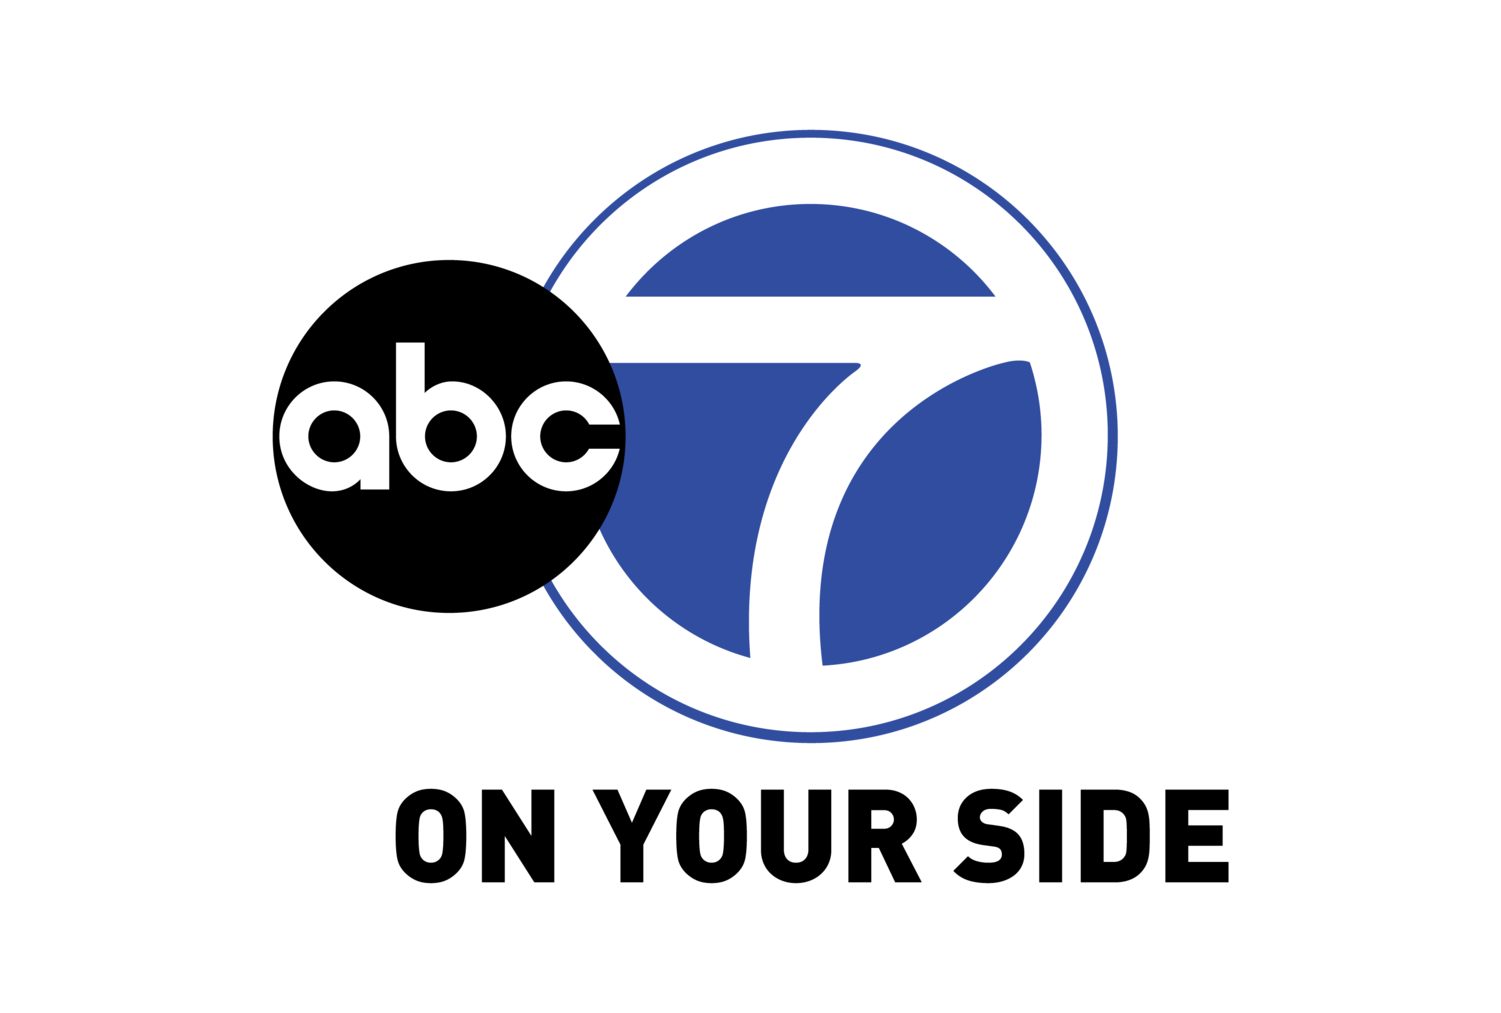 WJLA_ABC7_final_RGB_SOLID_ONYOURSIDE_VERT_50.png